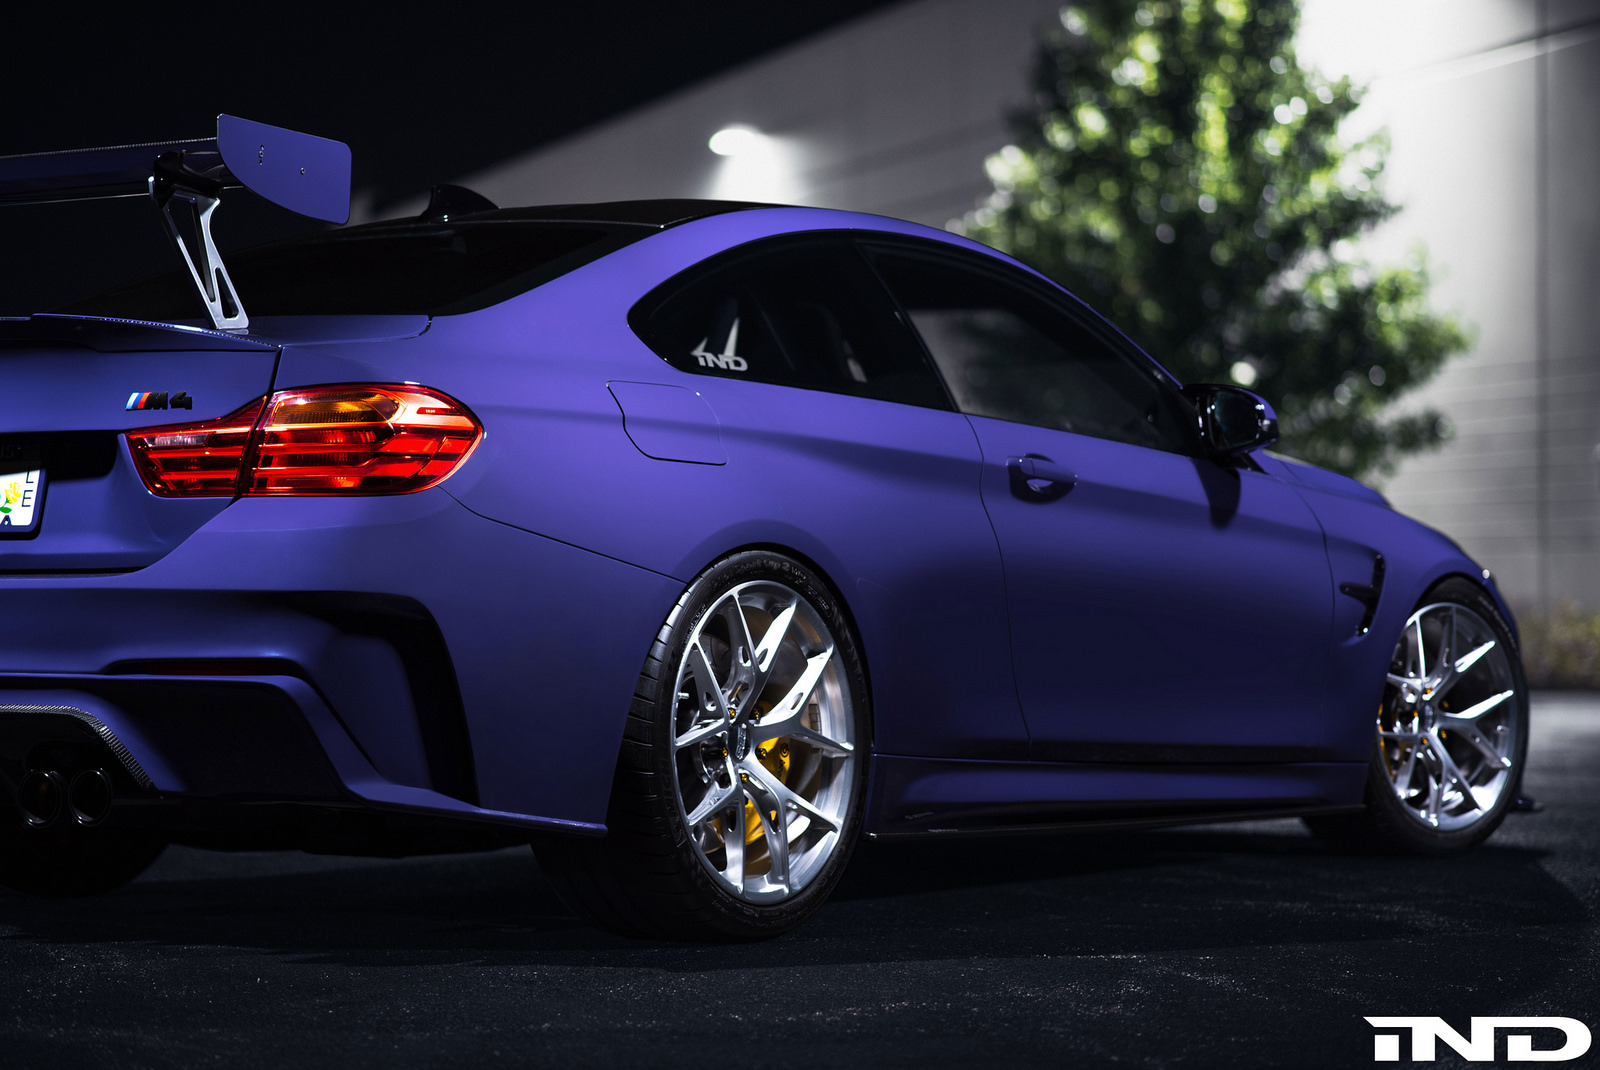 bmw-m2-m4-by-ind-distribution-20